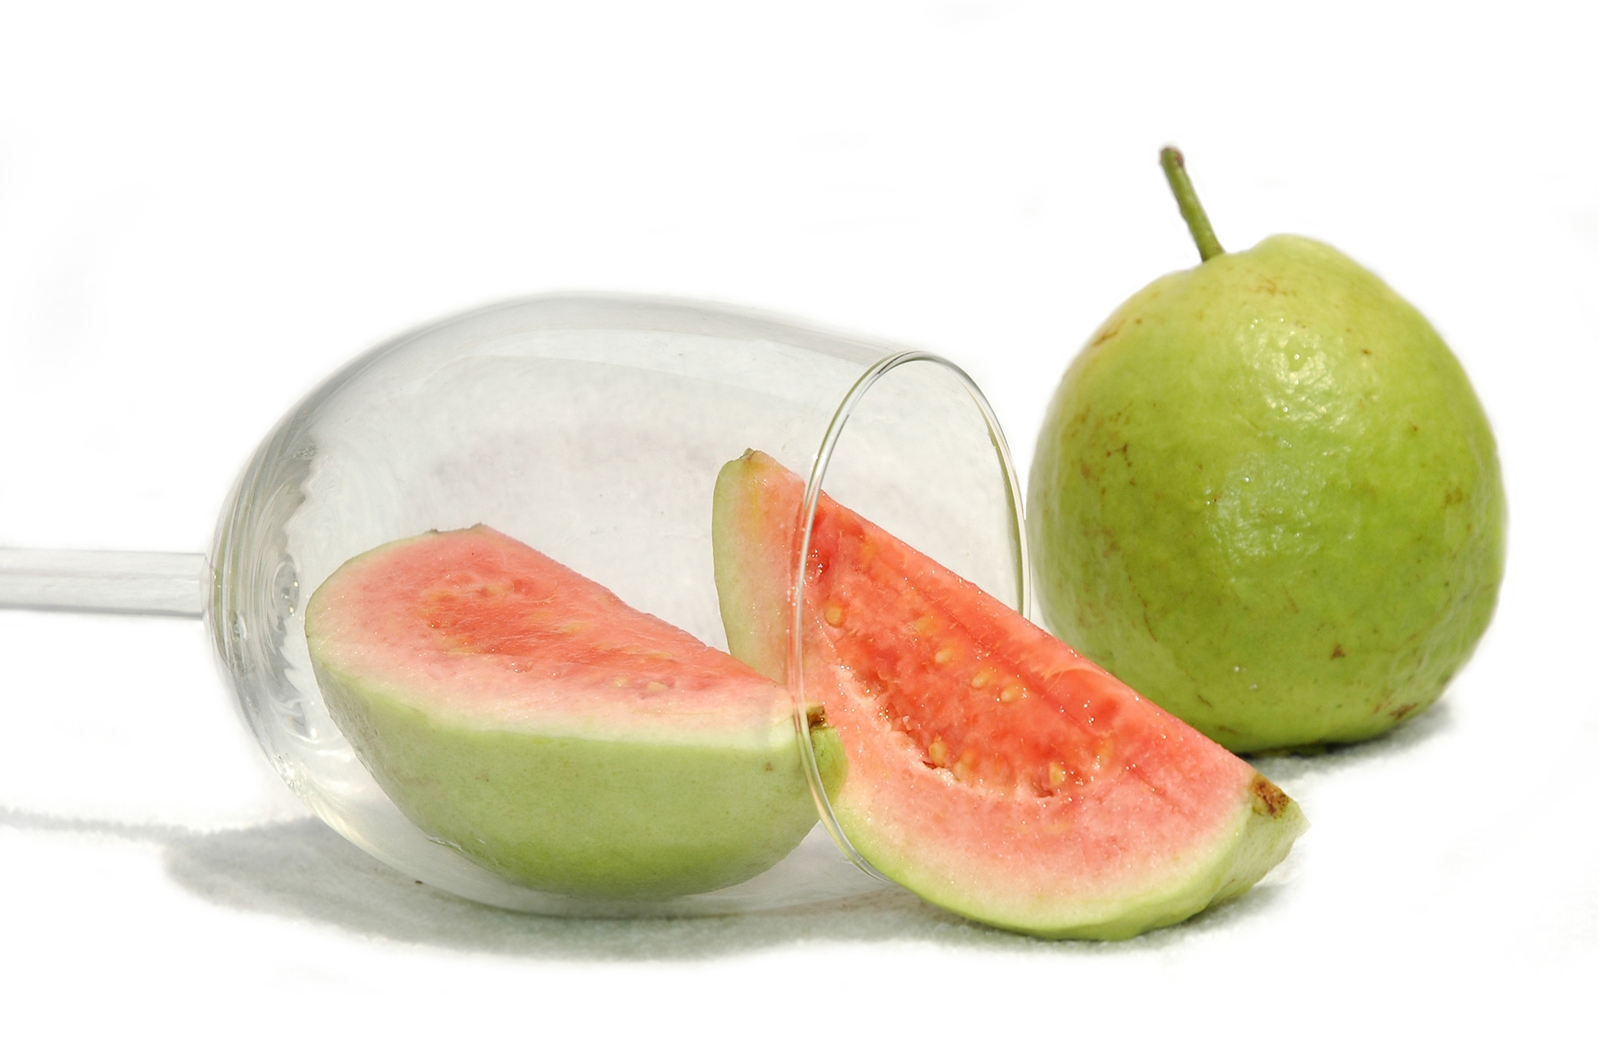 The Wondrous Guava Superfruit